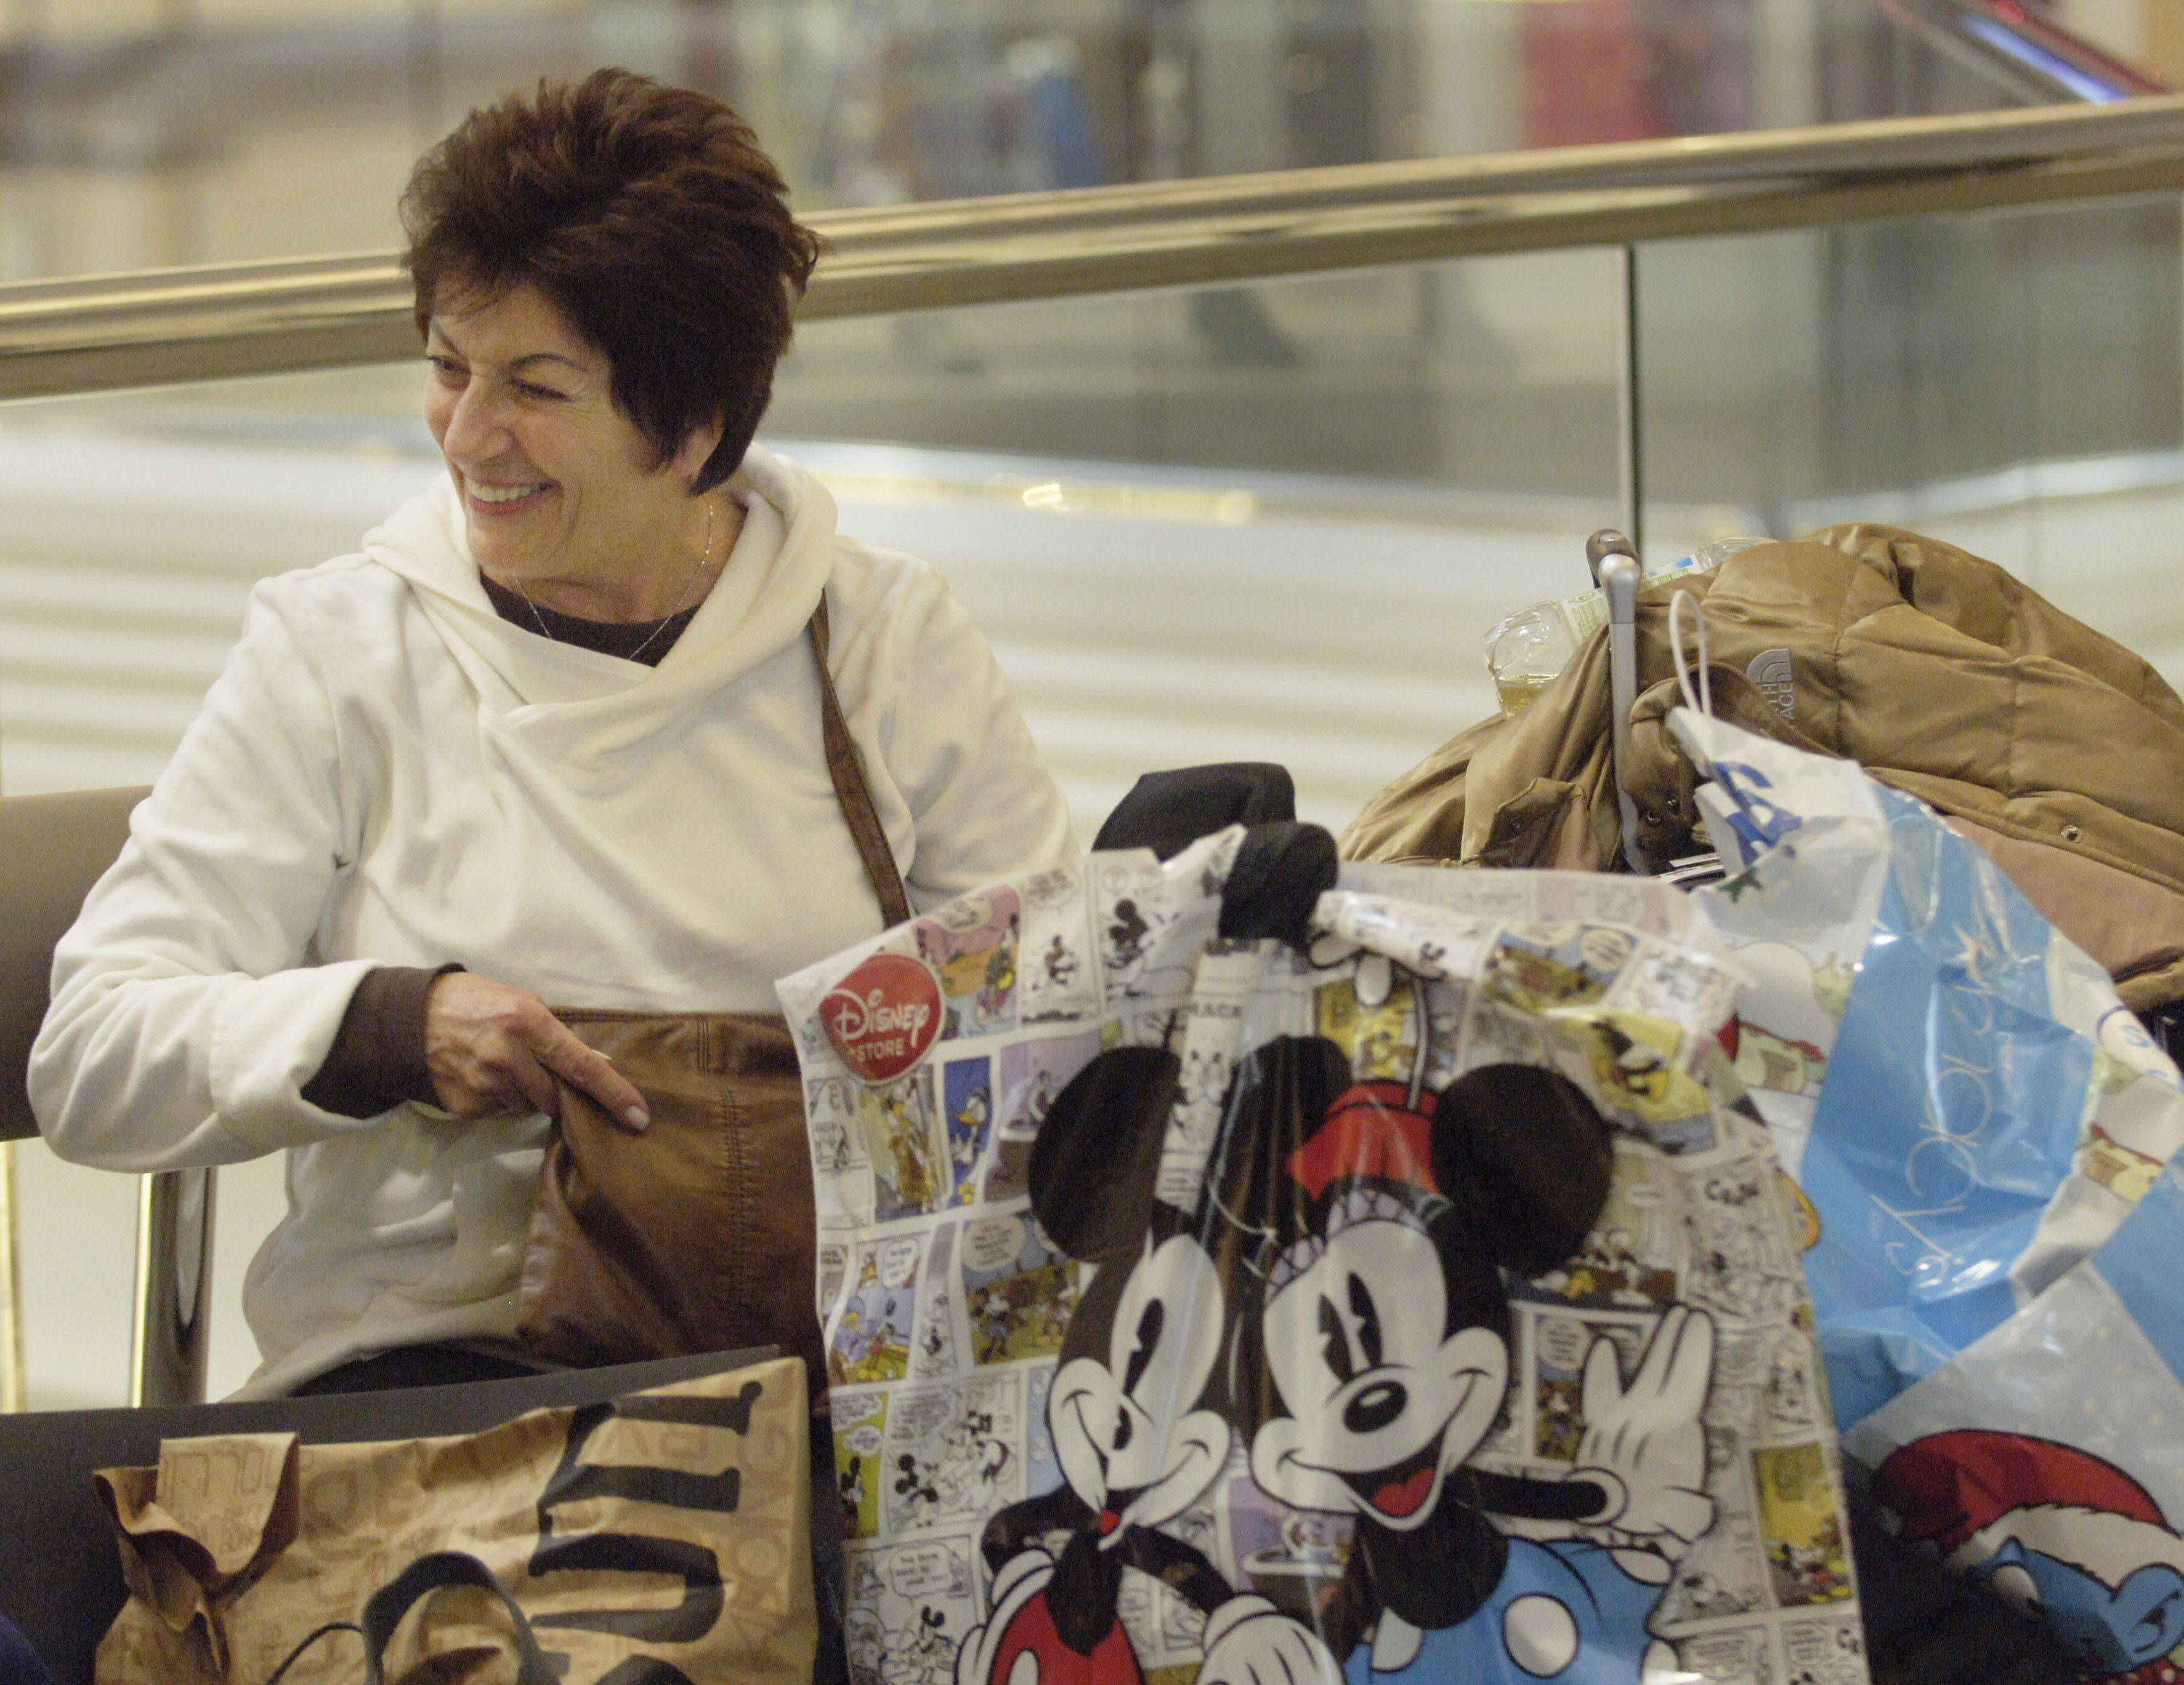 Fran Divizio of Schaumburg takes a break while shopping at Woodfield mall in Schaumburg Friday.